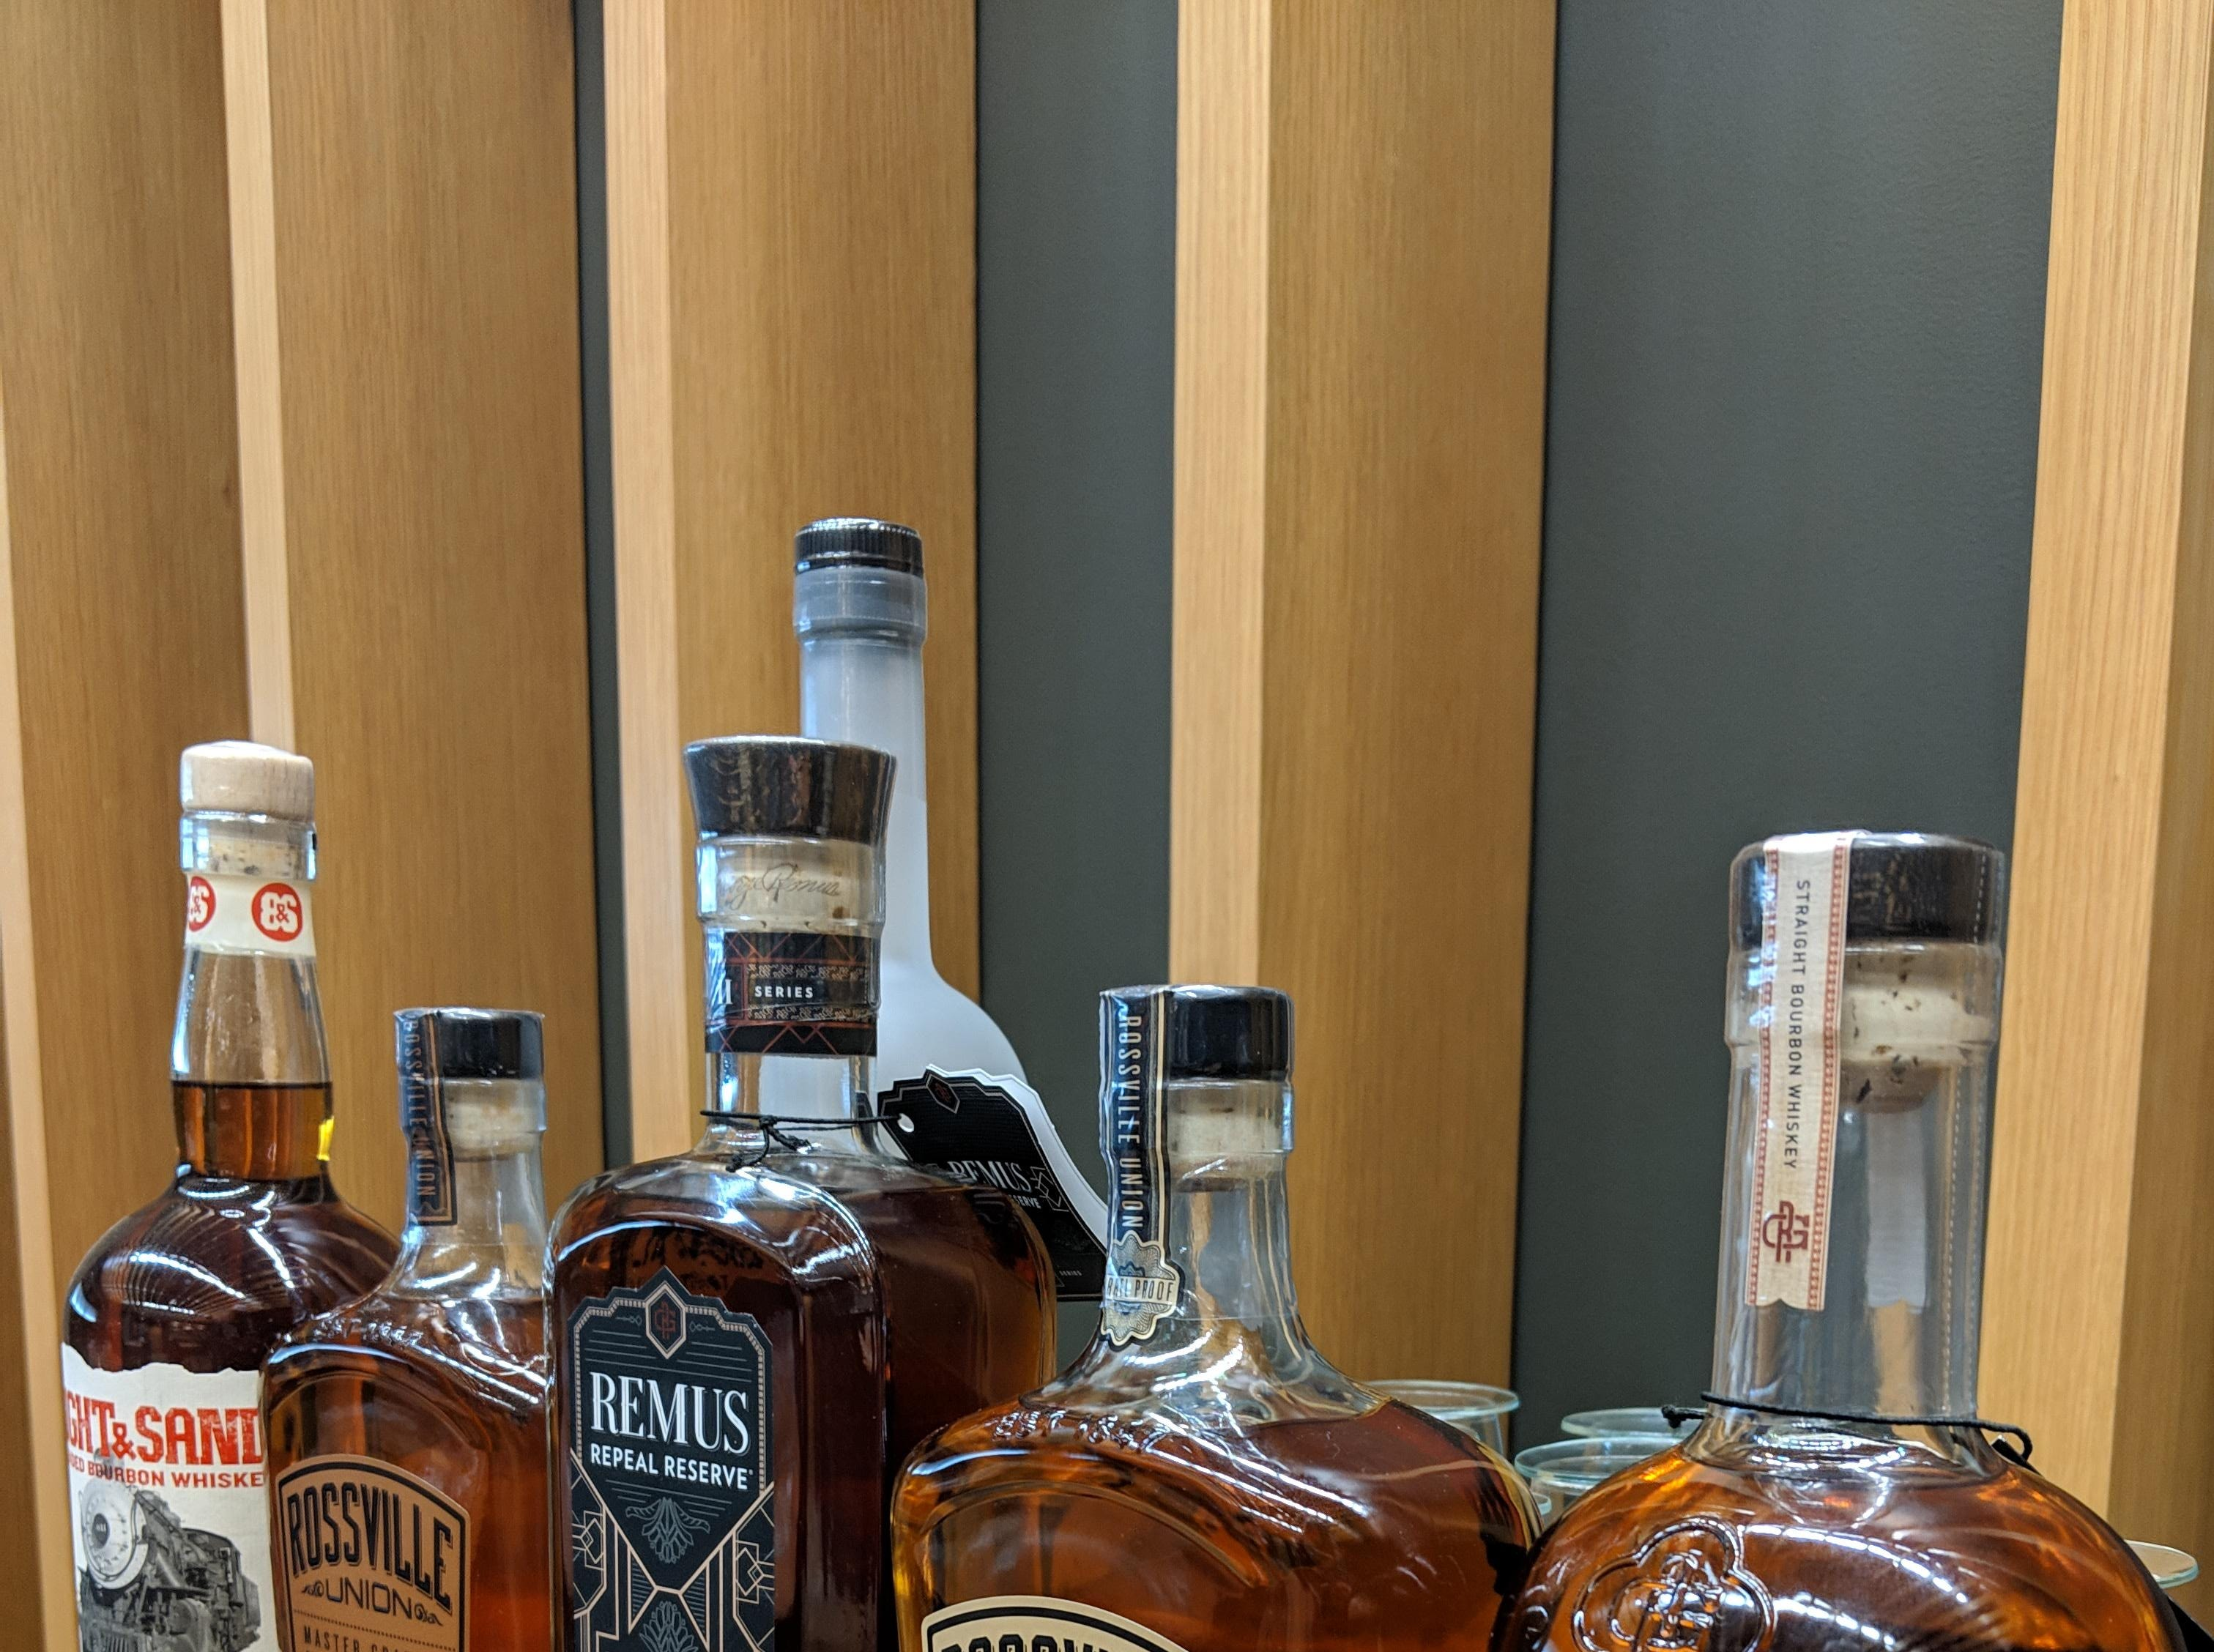 Some of the brands produced at the MGP distillery in Lawrenceburg, Indiana, just outside Cincinnati.